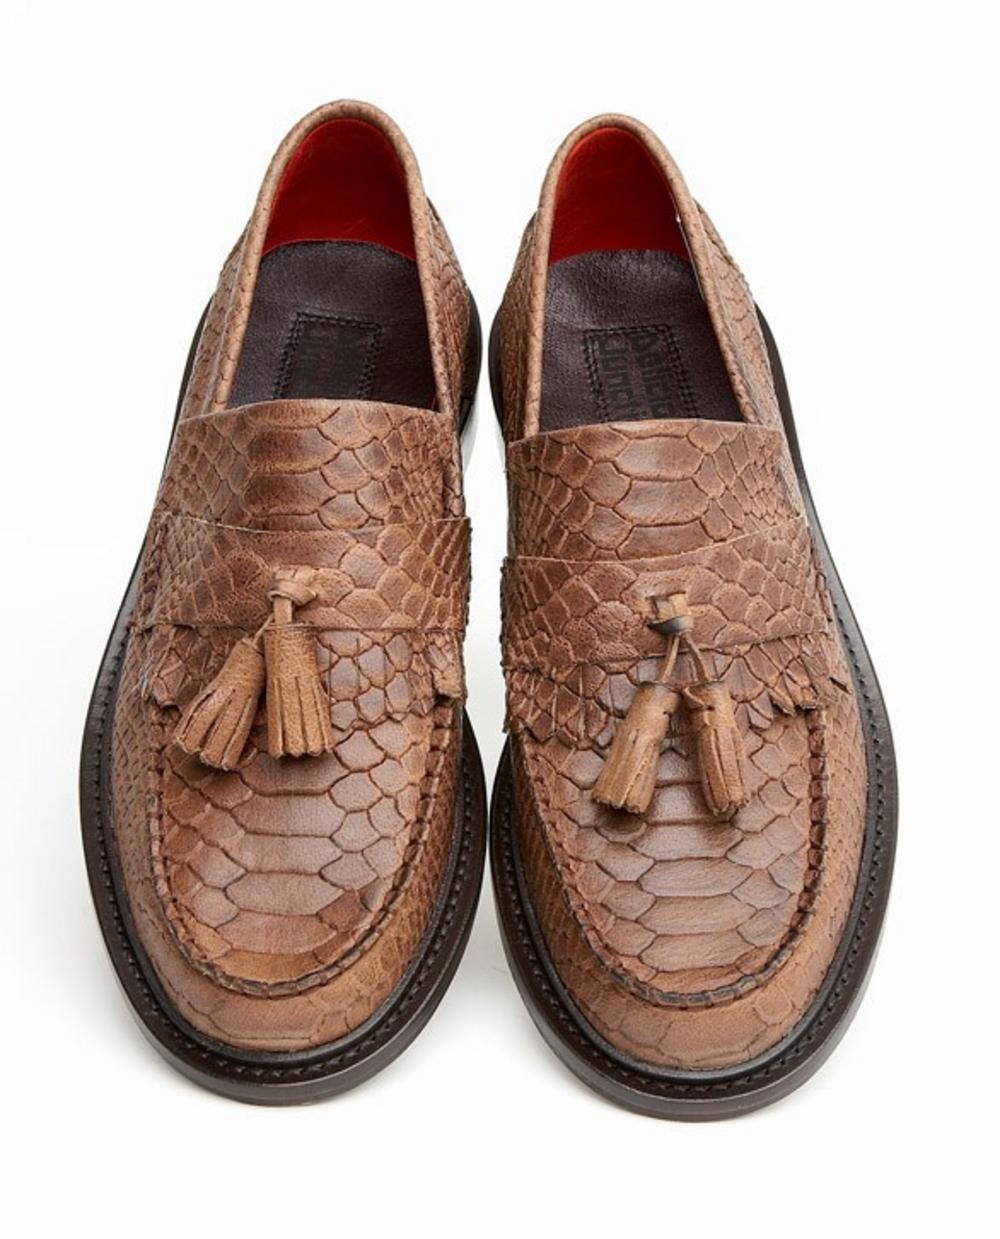 b67cb5994b8 Delicious Junction Tassel Loafers Mod Shoe Snakeskin Effect Leather Brown 9